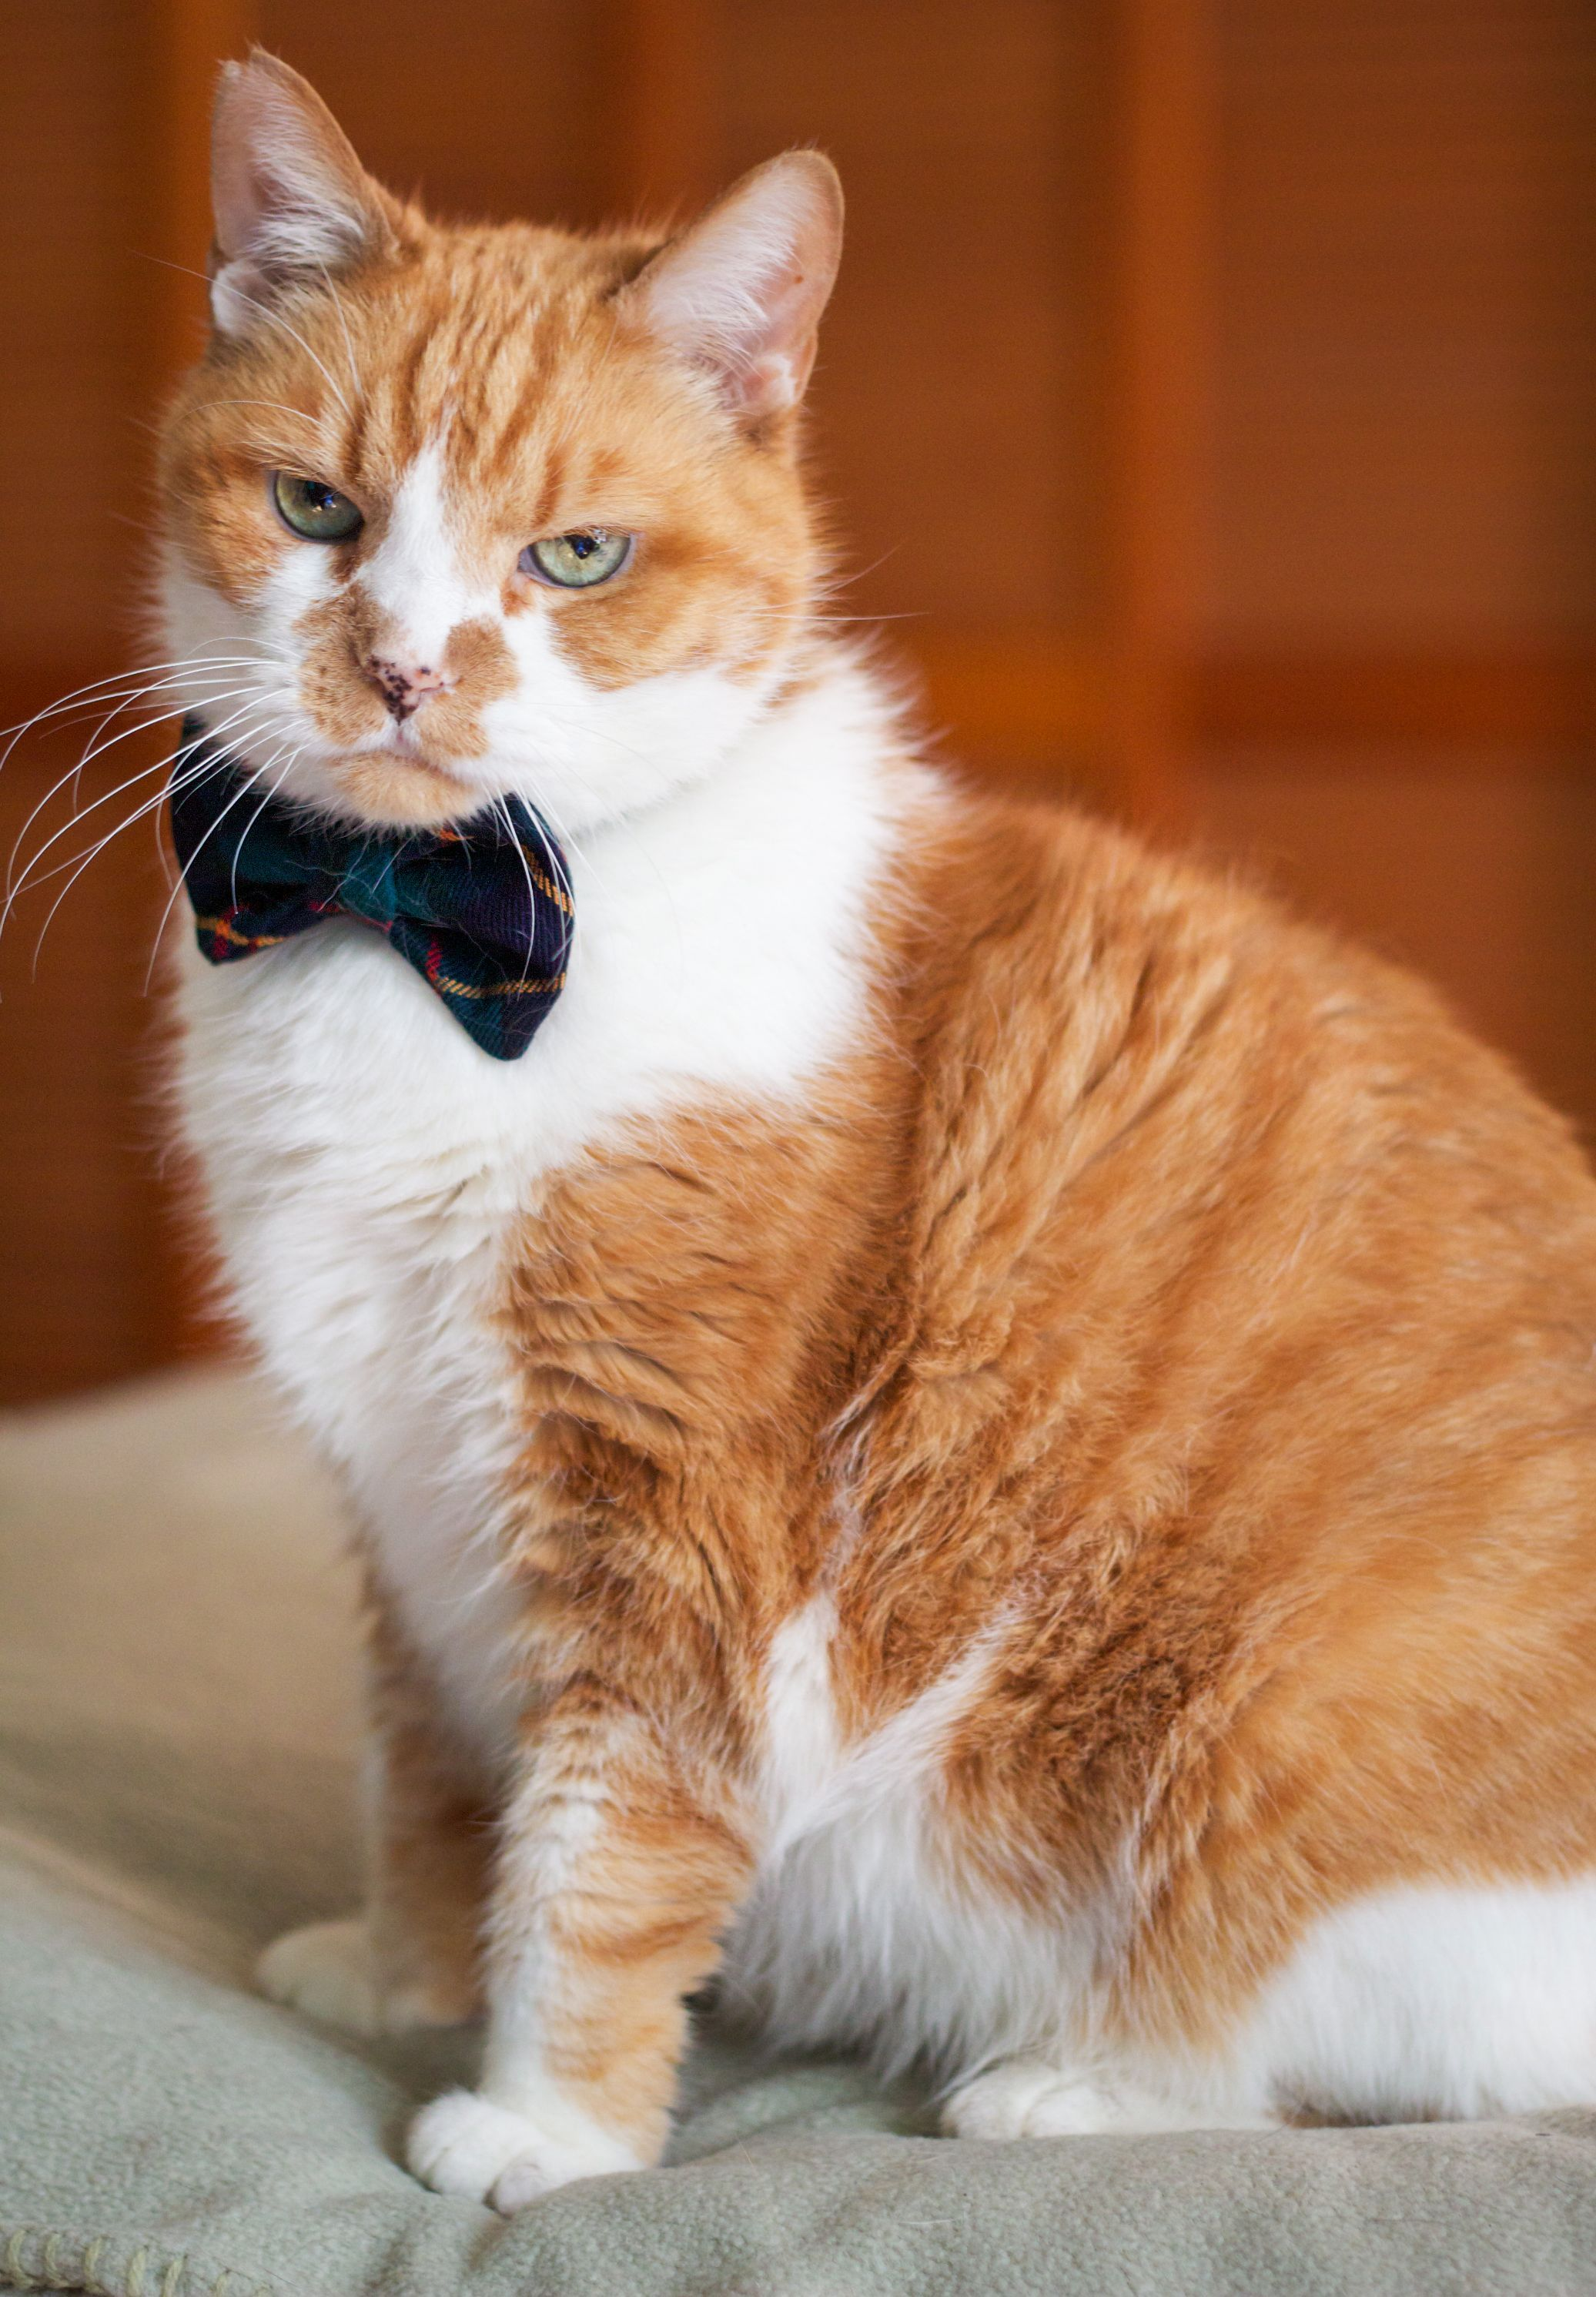 11 cats who loathe weddings and arent afraid to show it cat 11 cats who loathe weddings and arent afraid to show it junglespirit Images